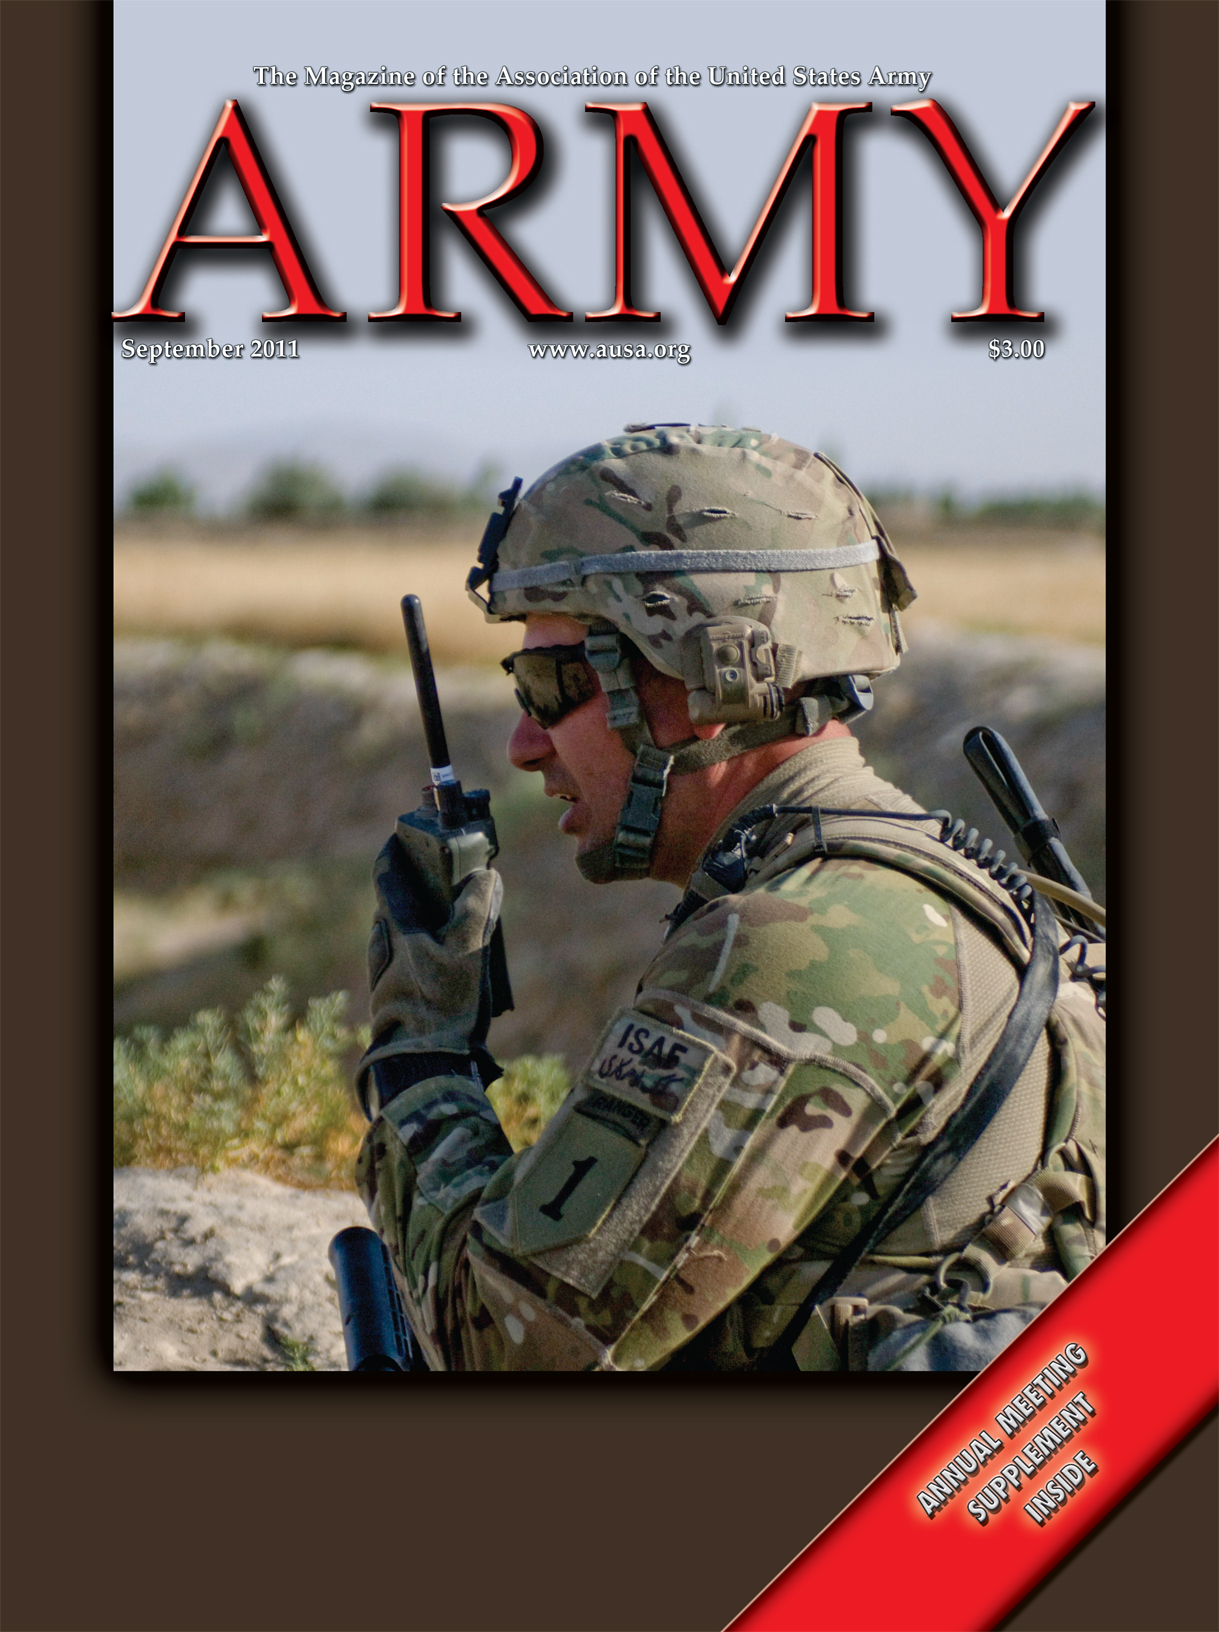 Army Magazine : September 2011 Volume 61, Issue 9 by French, Mary Blake